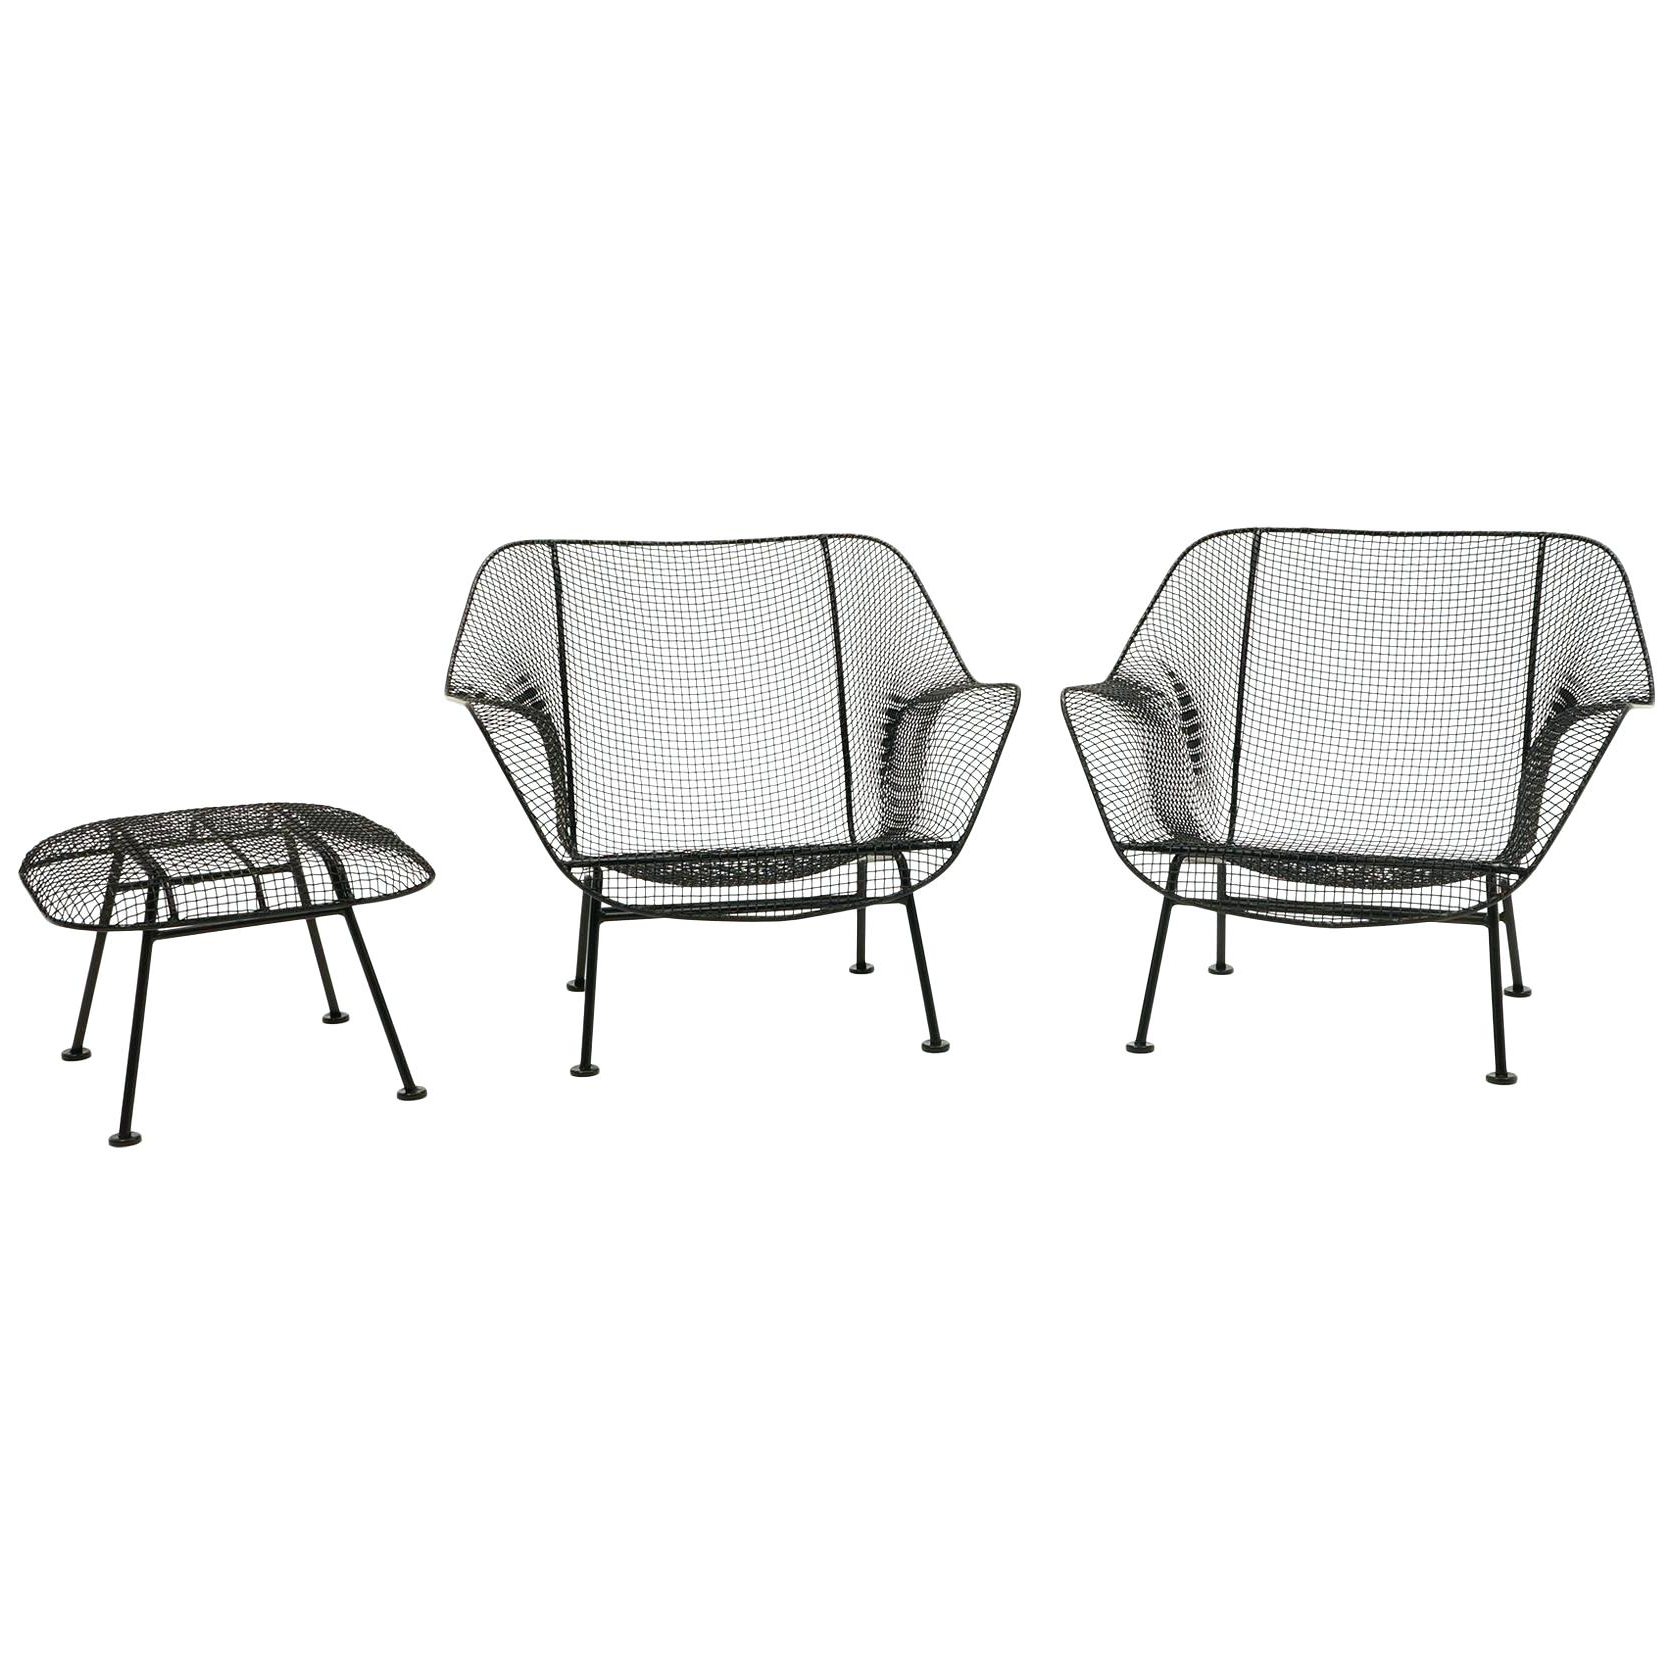 Trendy Patio Lounge Chair With Ottoman – Pinerowfarm Regarding Outdoor Patio Lounge Chairs With Ottoman (View 23 of 25)